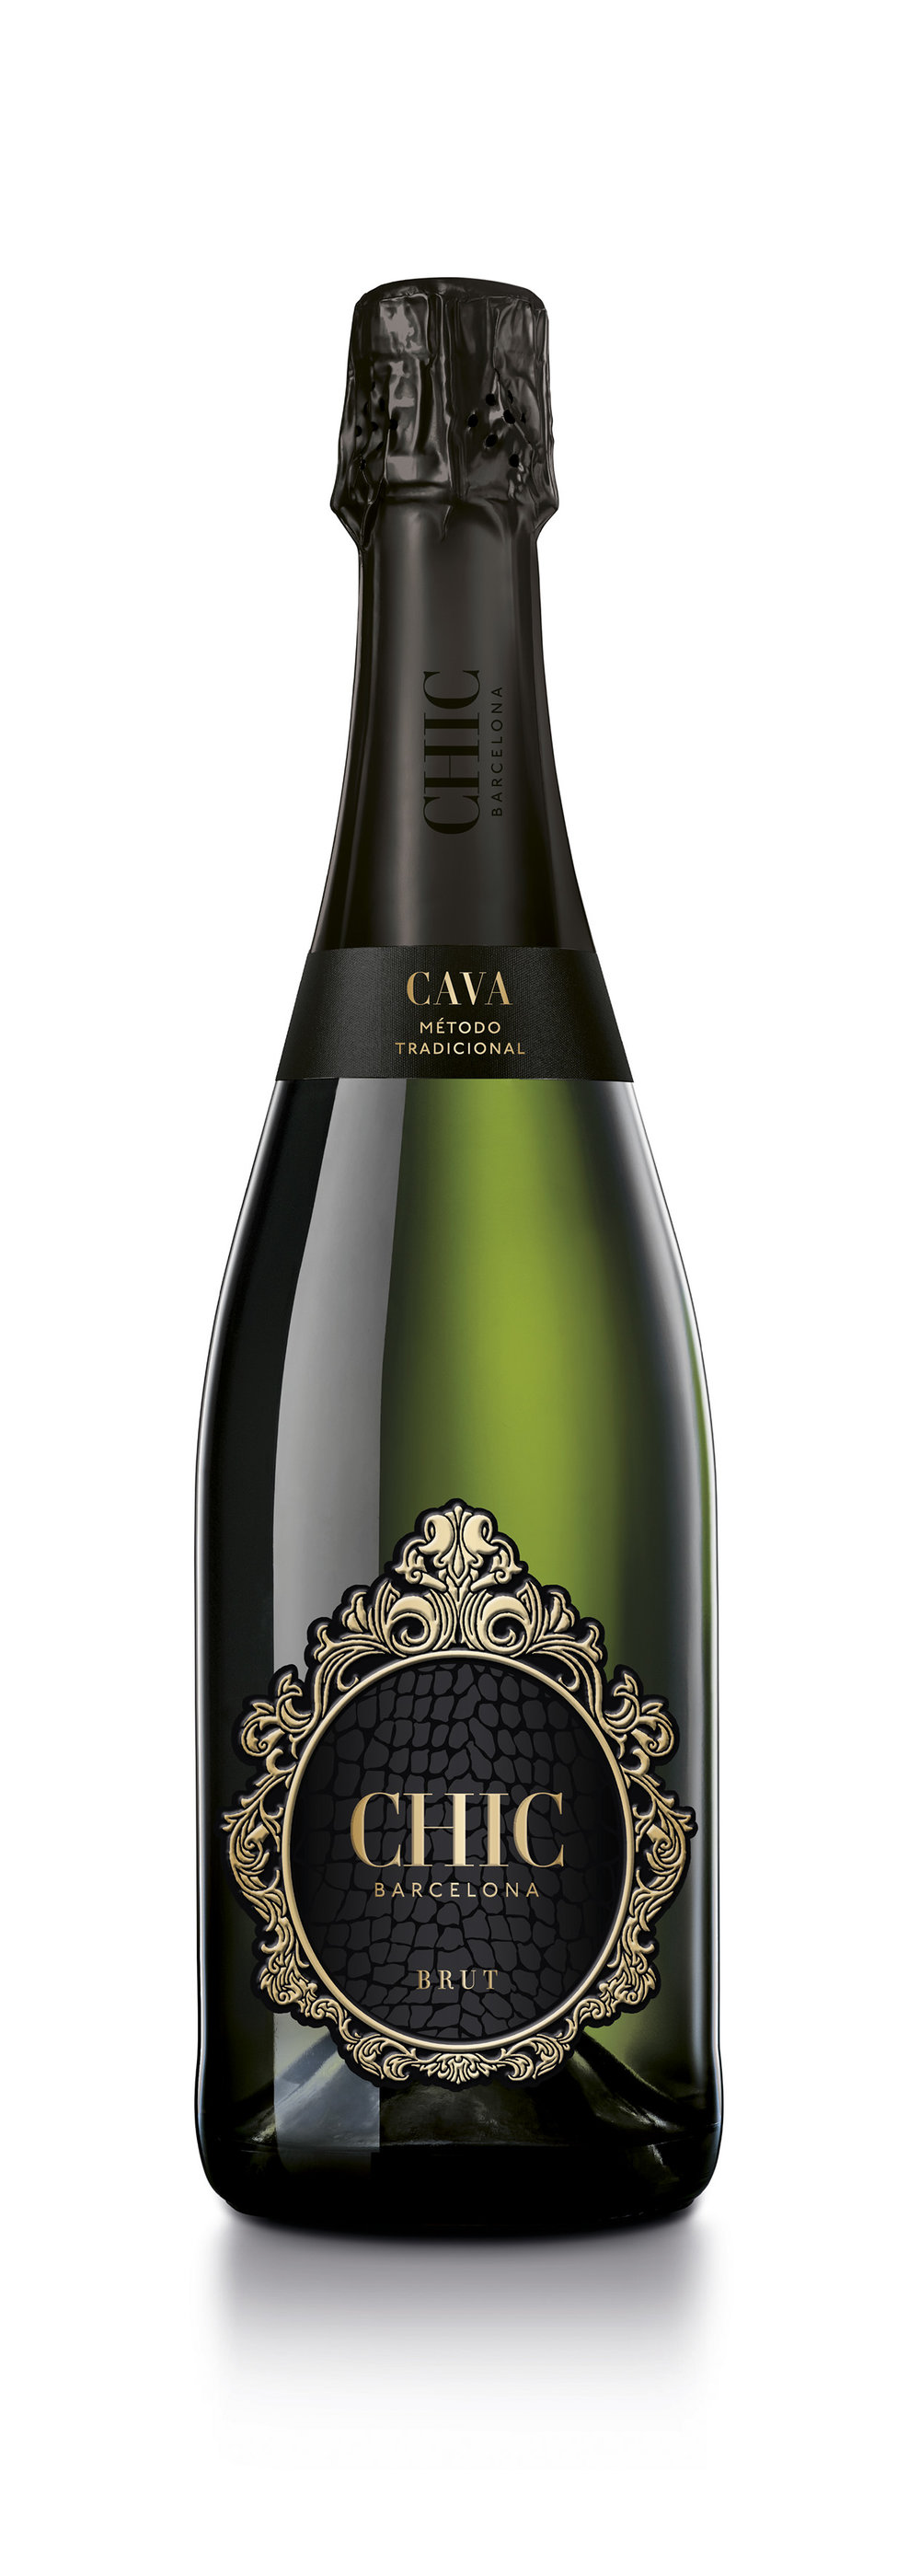 Chic Barcelona Brut Cava-Miami Wine Events-Wine Tasting Miami.jpg